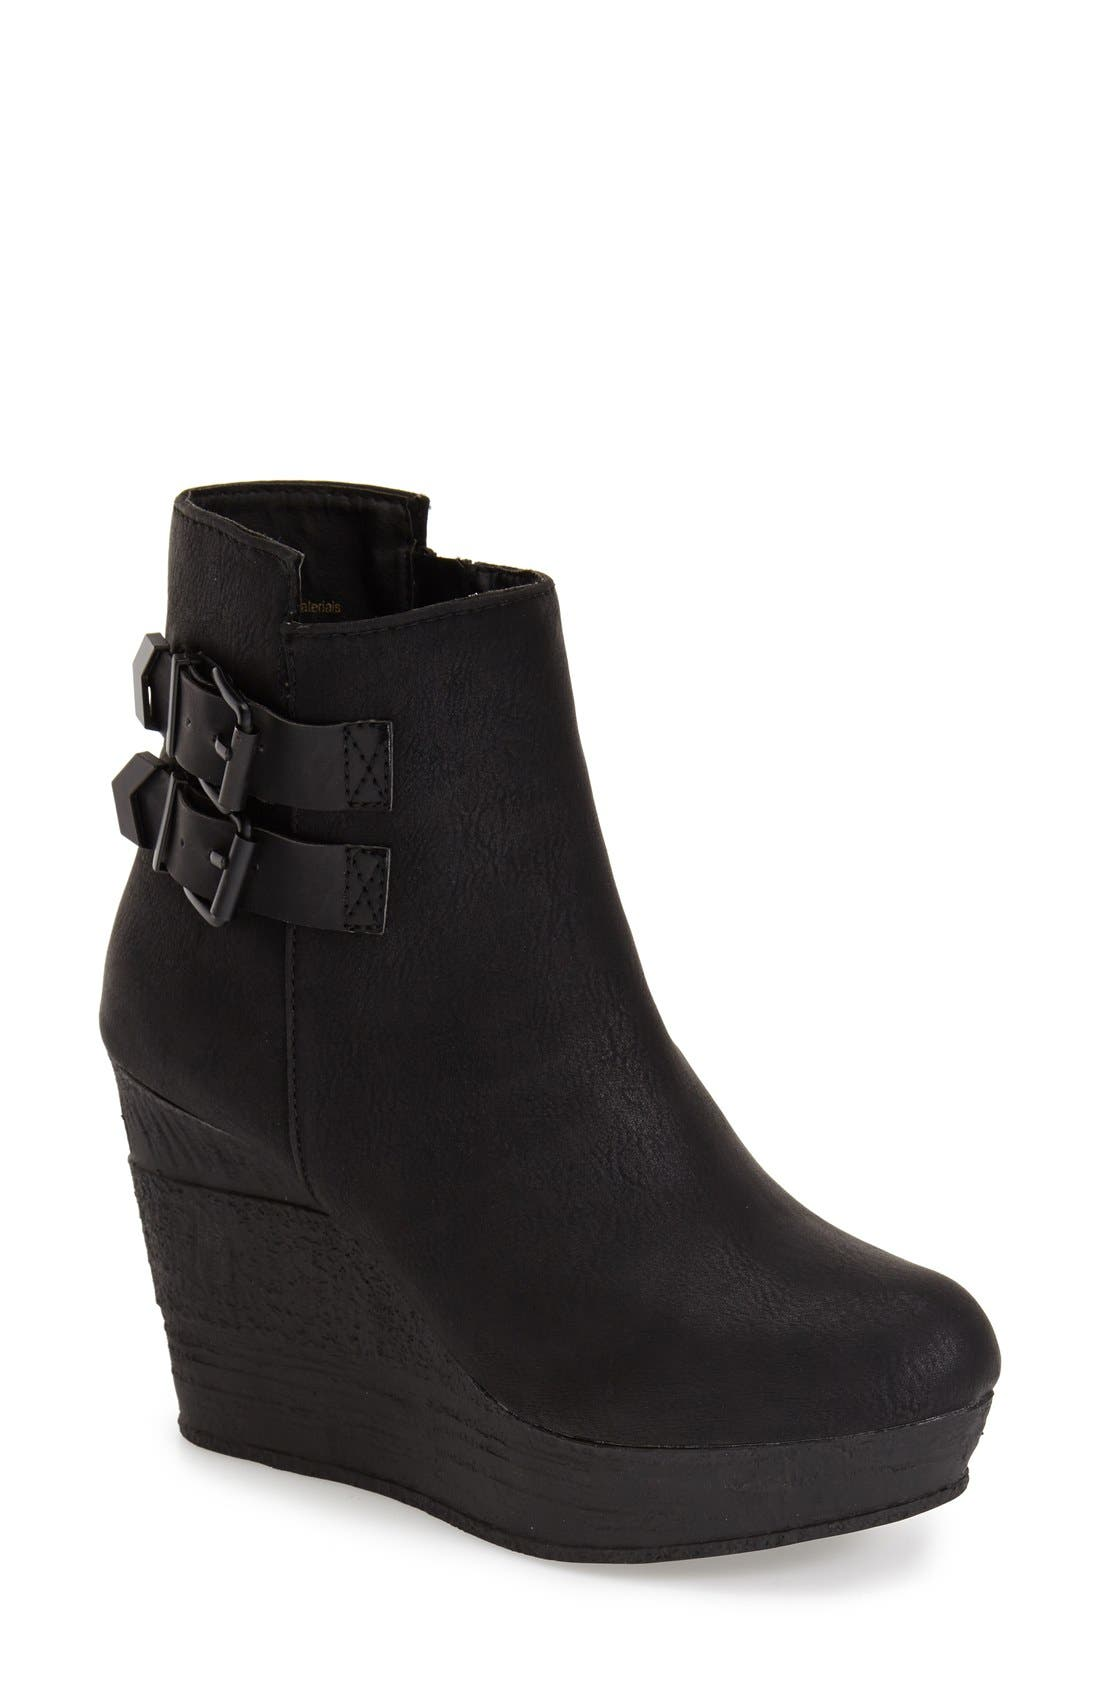 Main Image - Sbicca 'Woodway' Wedge Bootie (Women)